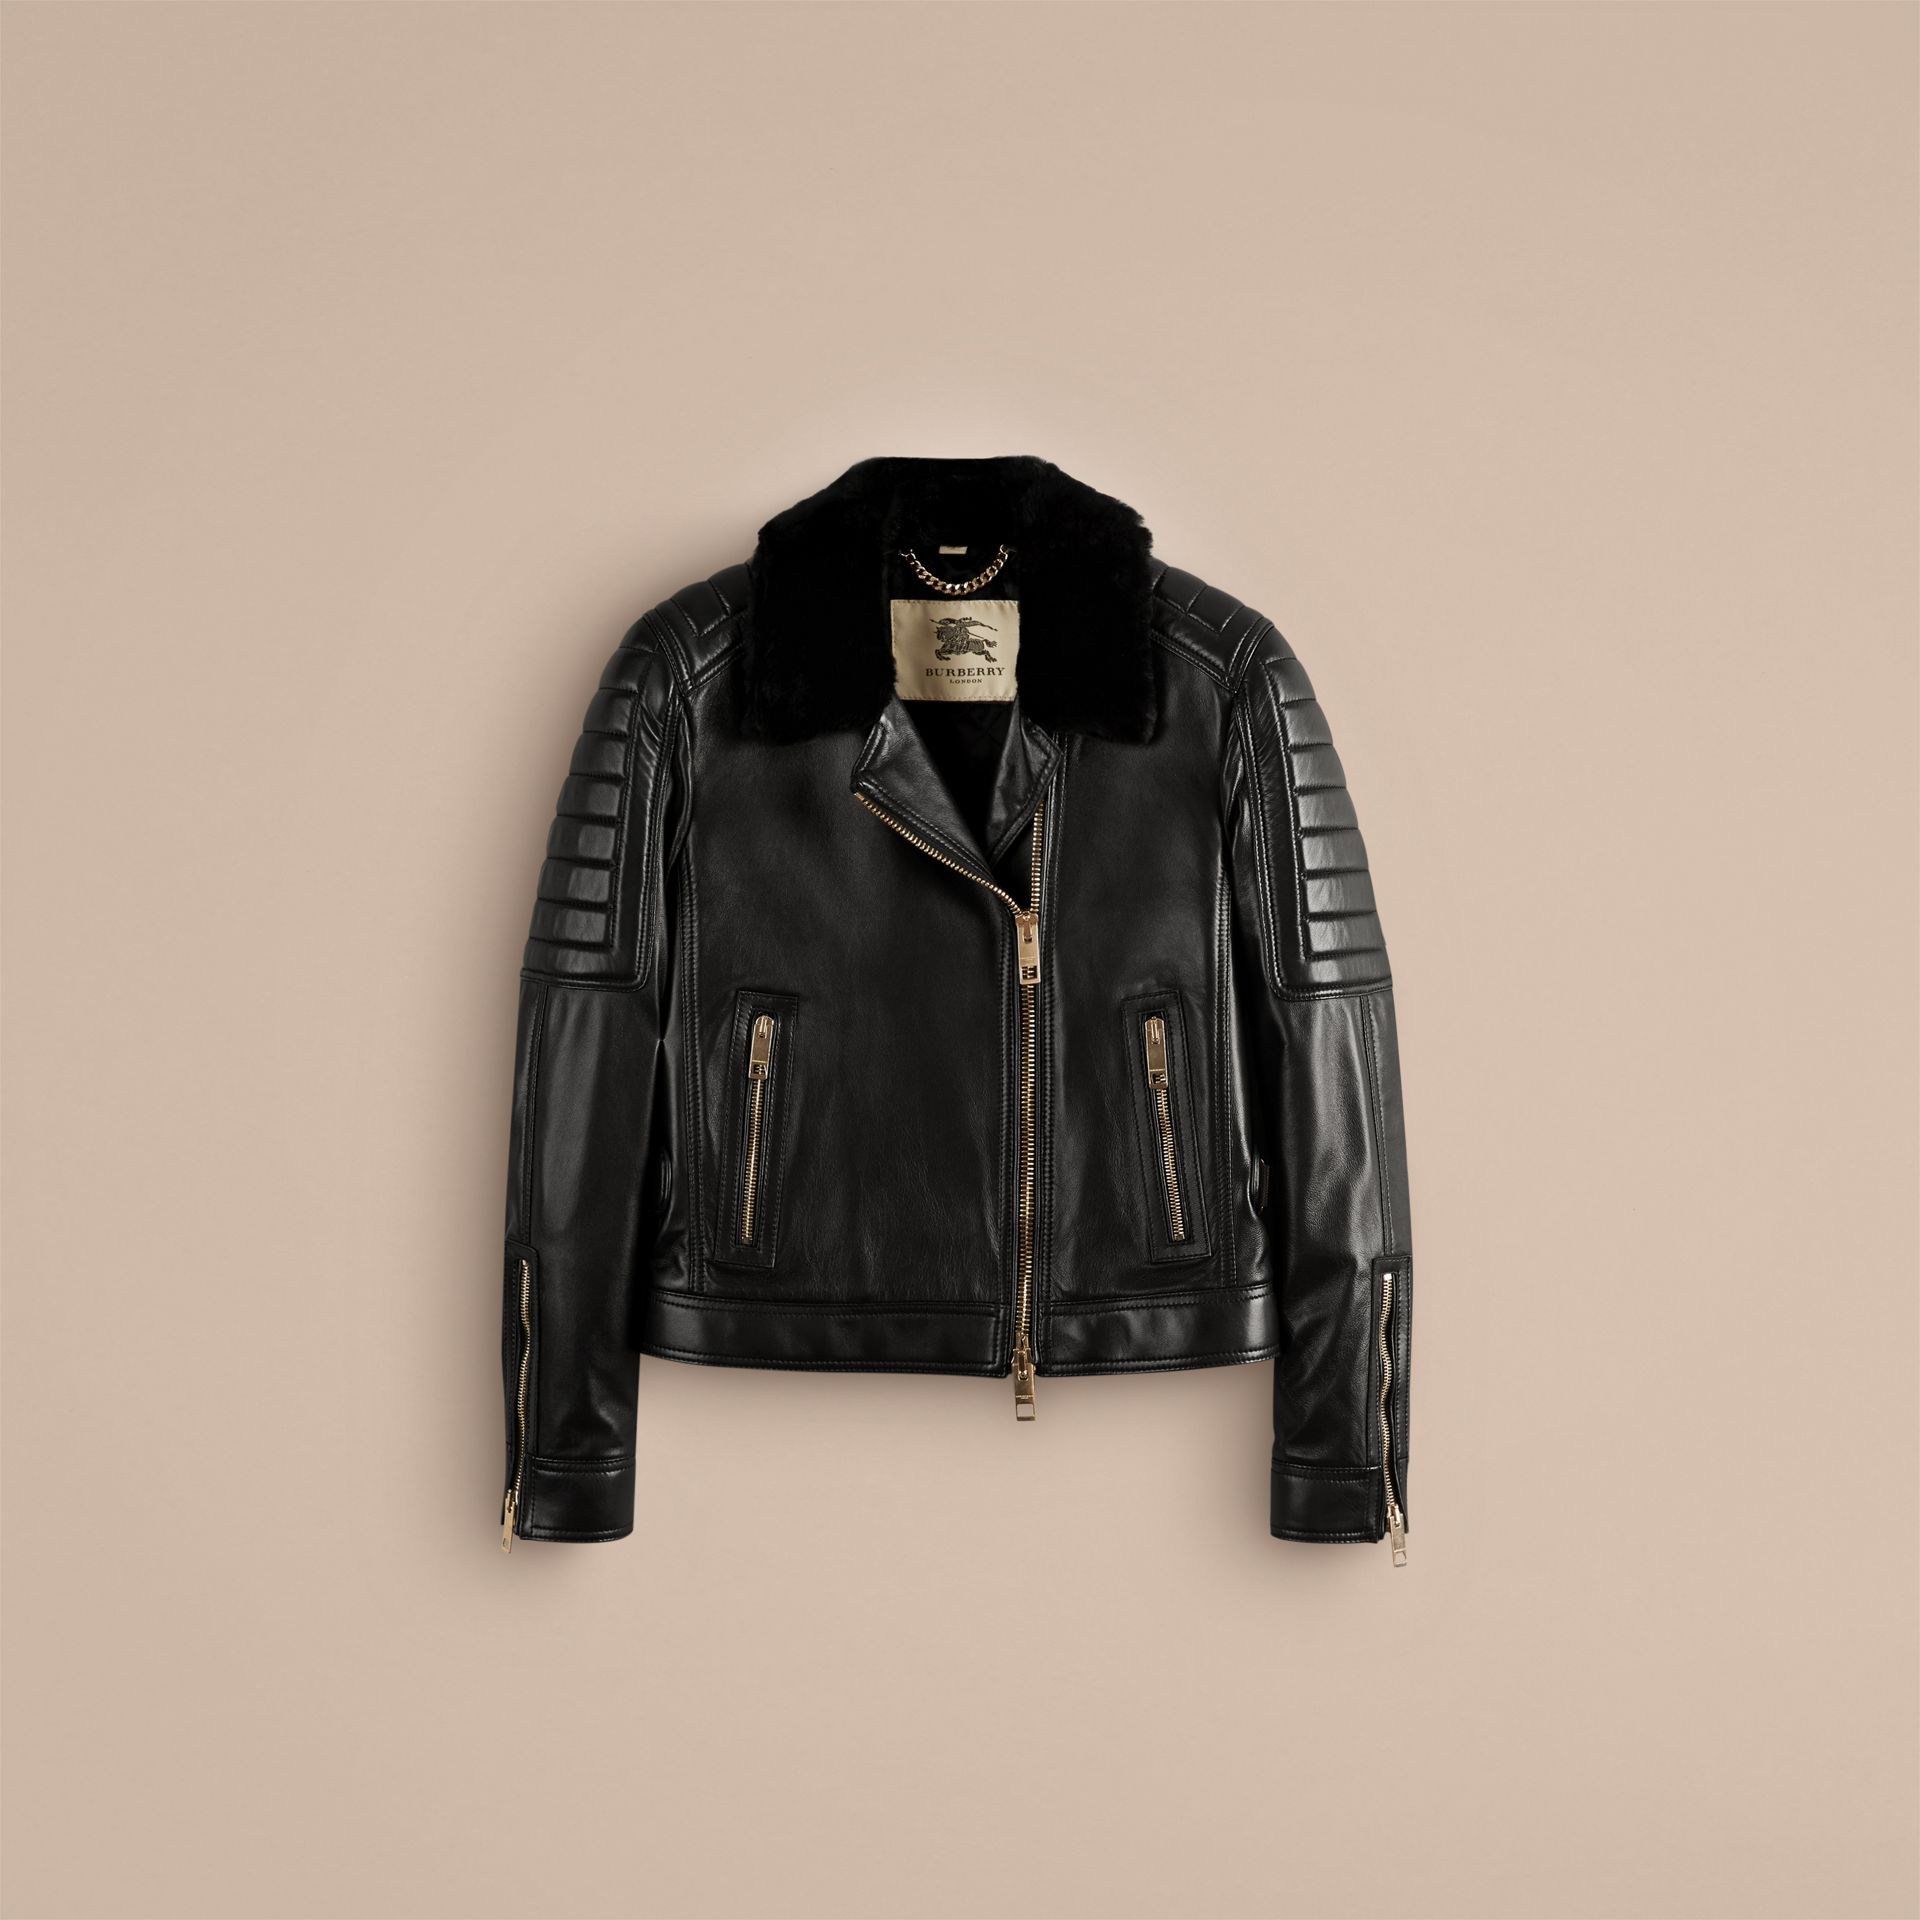 Black Lambskin Biker Jacket with Shearling Topcollar - gallery image 3